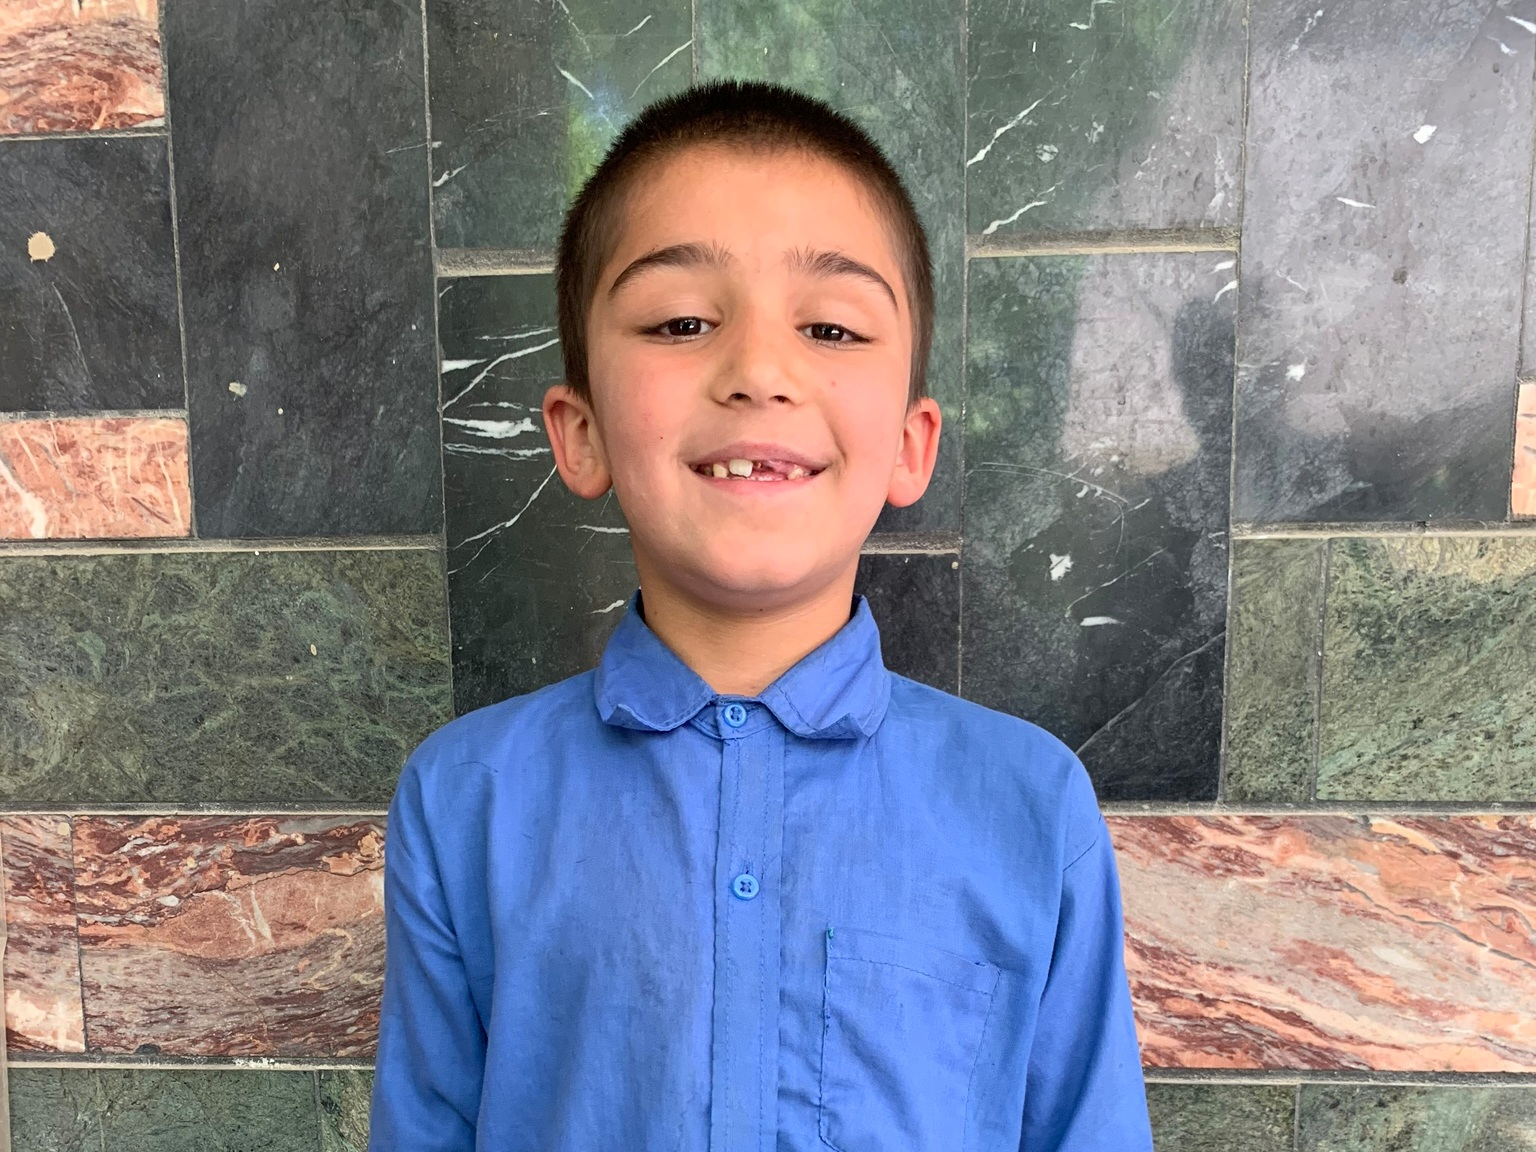 Ahmad Mubaraz, Age 9 - Ahmad Mubaraz has 9 siblings. His mother and father are both unemployed at this time.BE AHMAD MUBARAZ'S PARTNER>